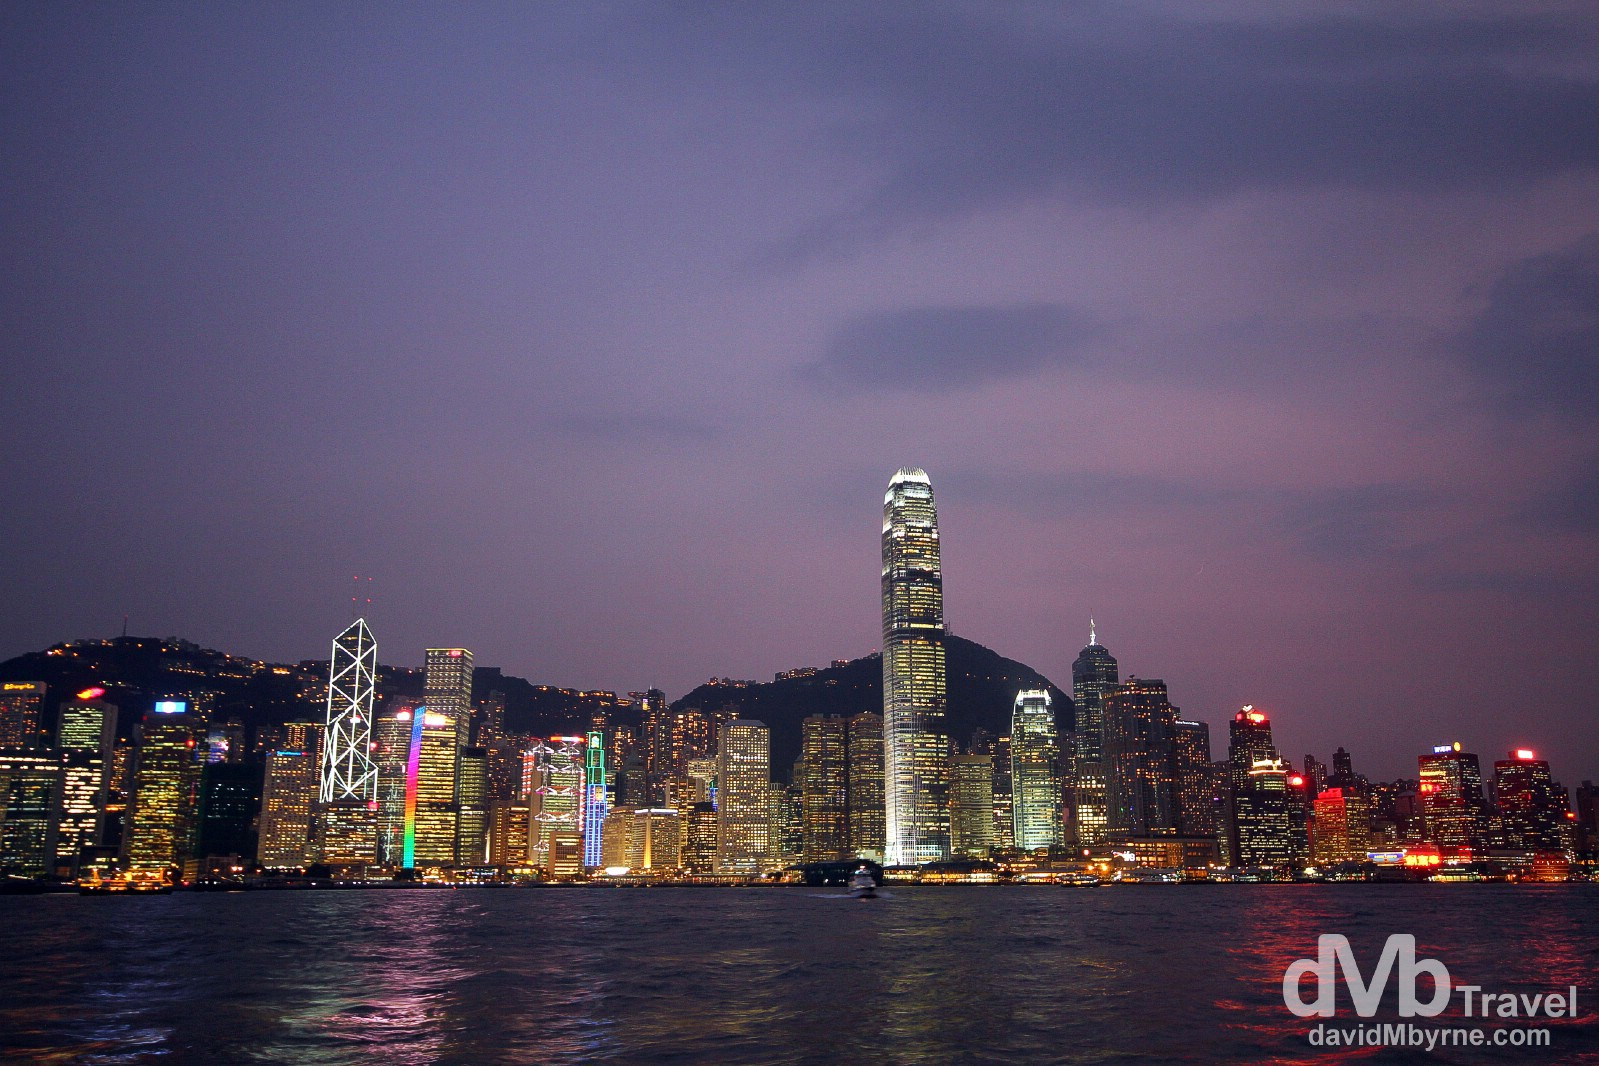 The skyline of Central Hong Kong as seen from across Victoria Harbour in Kowloon shortly after dusk. Hong Kong, China. October 17th 2012.